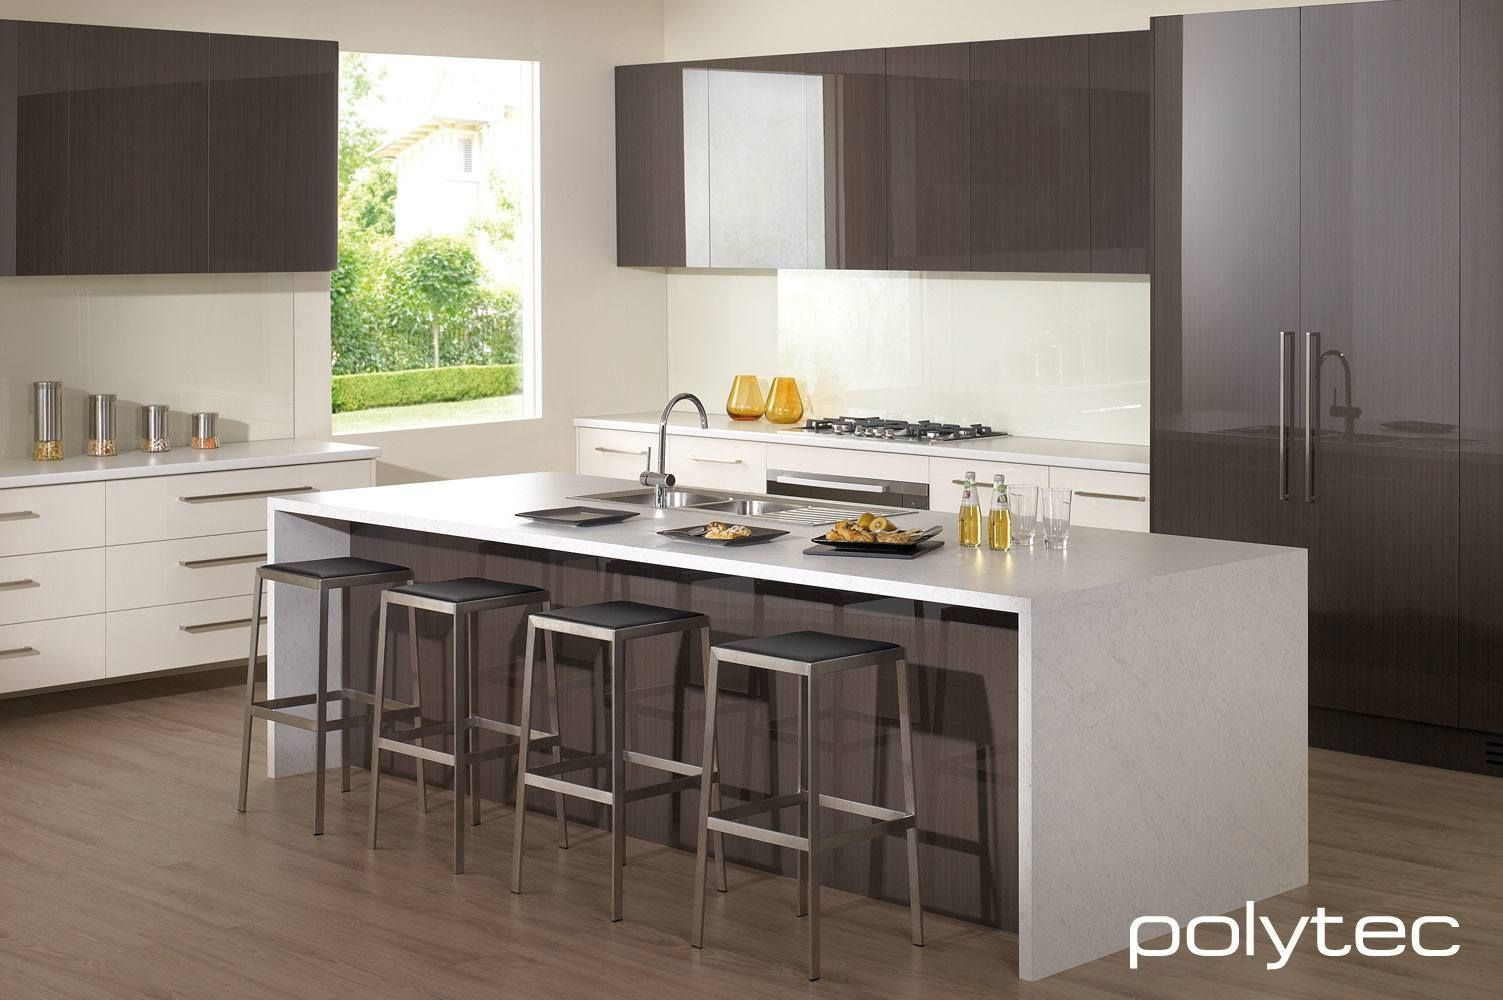 Doors in CREATEC Truffle Lini and Porcelain. Bench top in LAMINATE ...